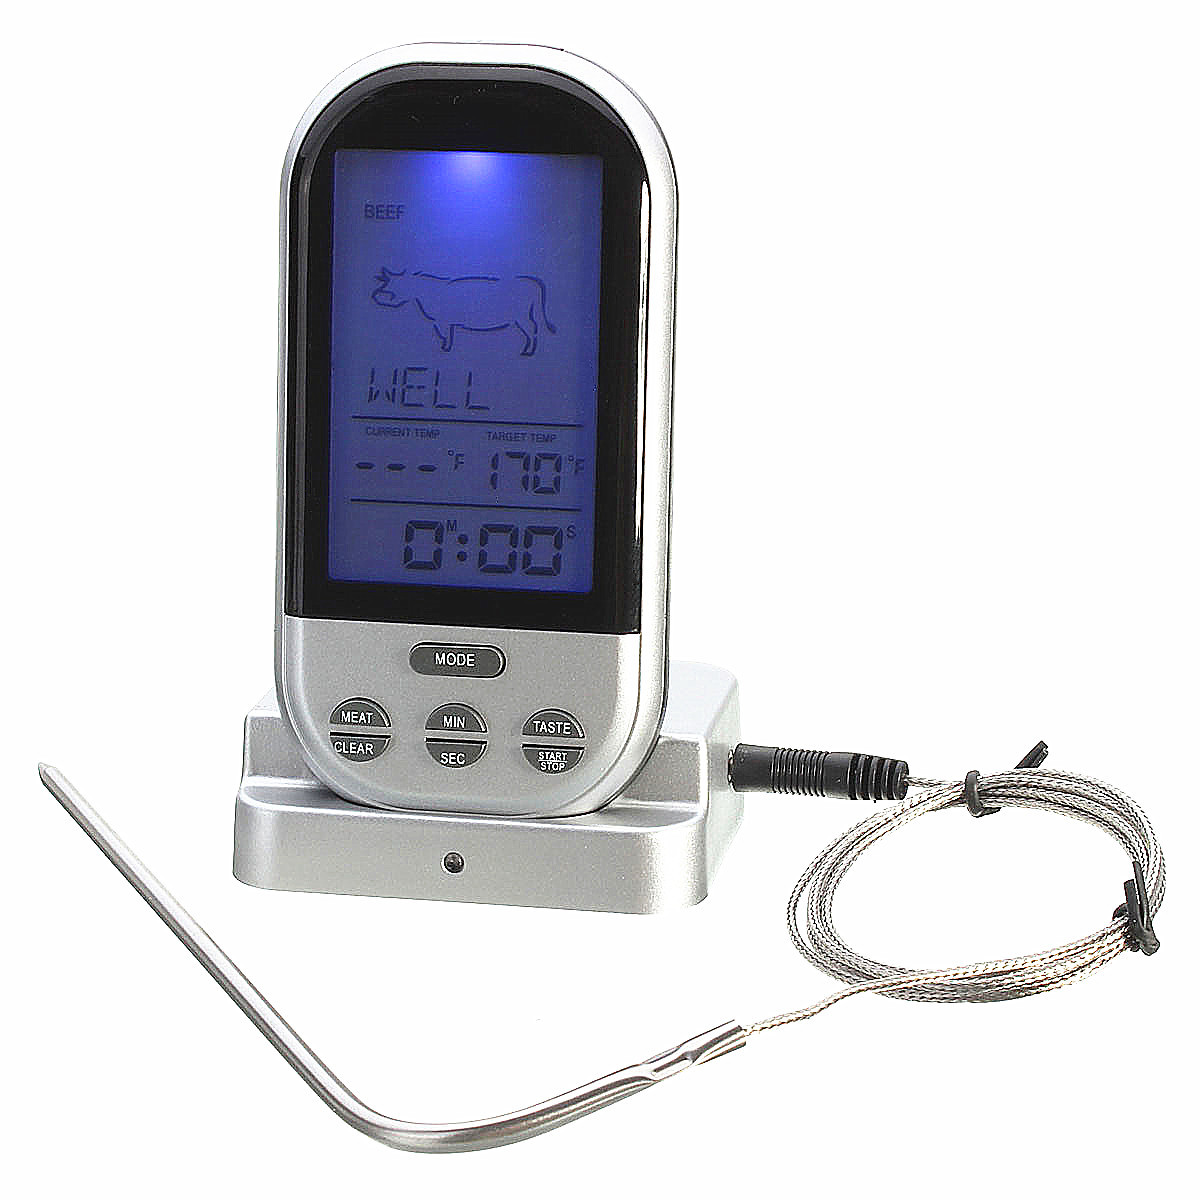 Wireless Remote Control Food Meat Outdoor BBQ Thermometer Home Kitchen Cooking Oven Thermometer. 57728d2f-b25b-37d3-a309-9ebe0e633256.jpg ...